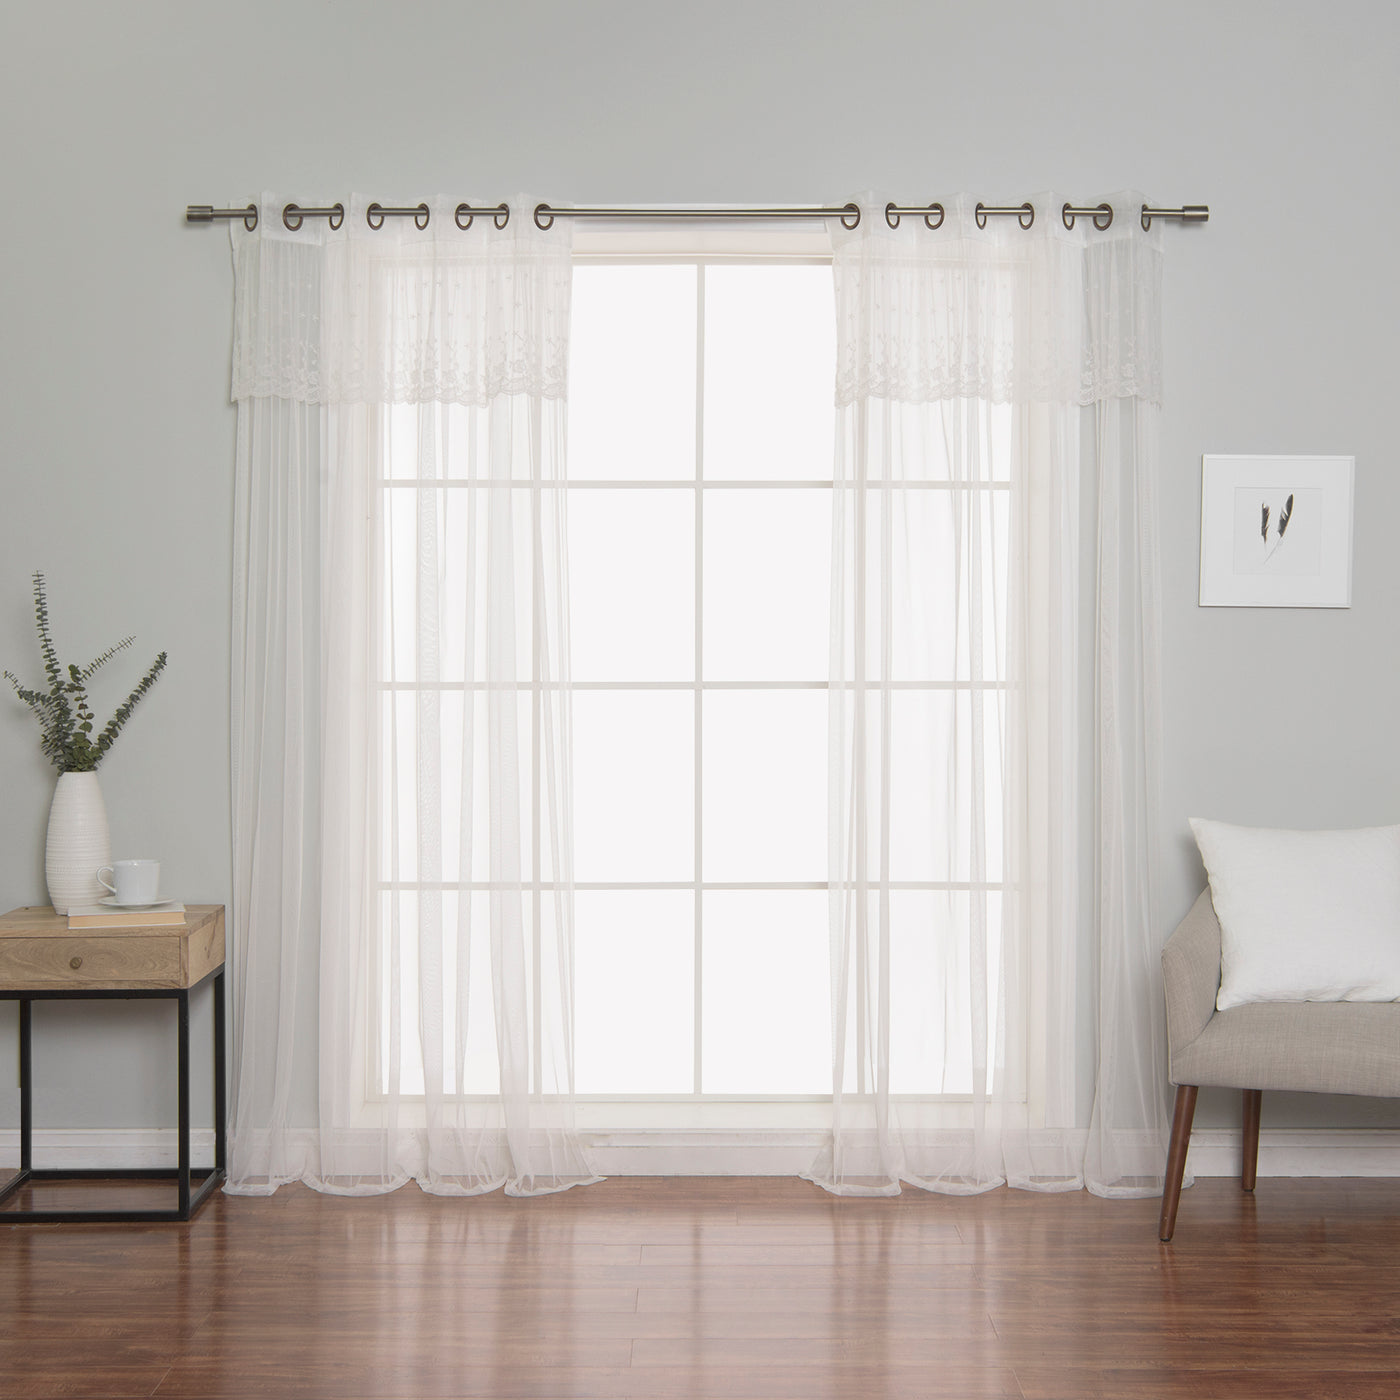 Tulle Lace With Attached Valance Curtains Best Home Fashion